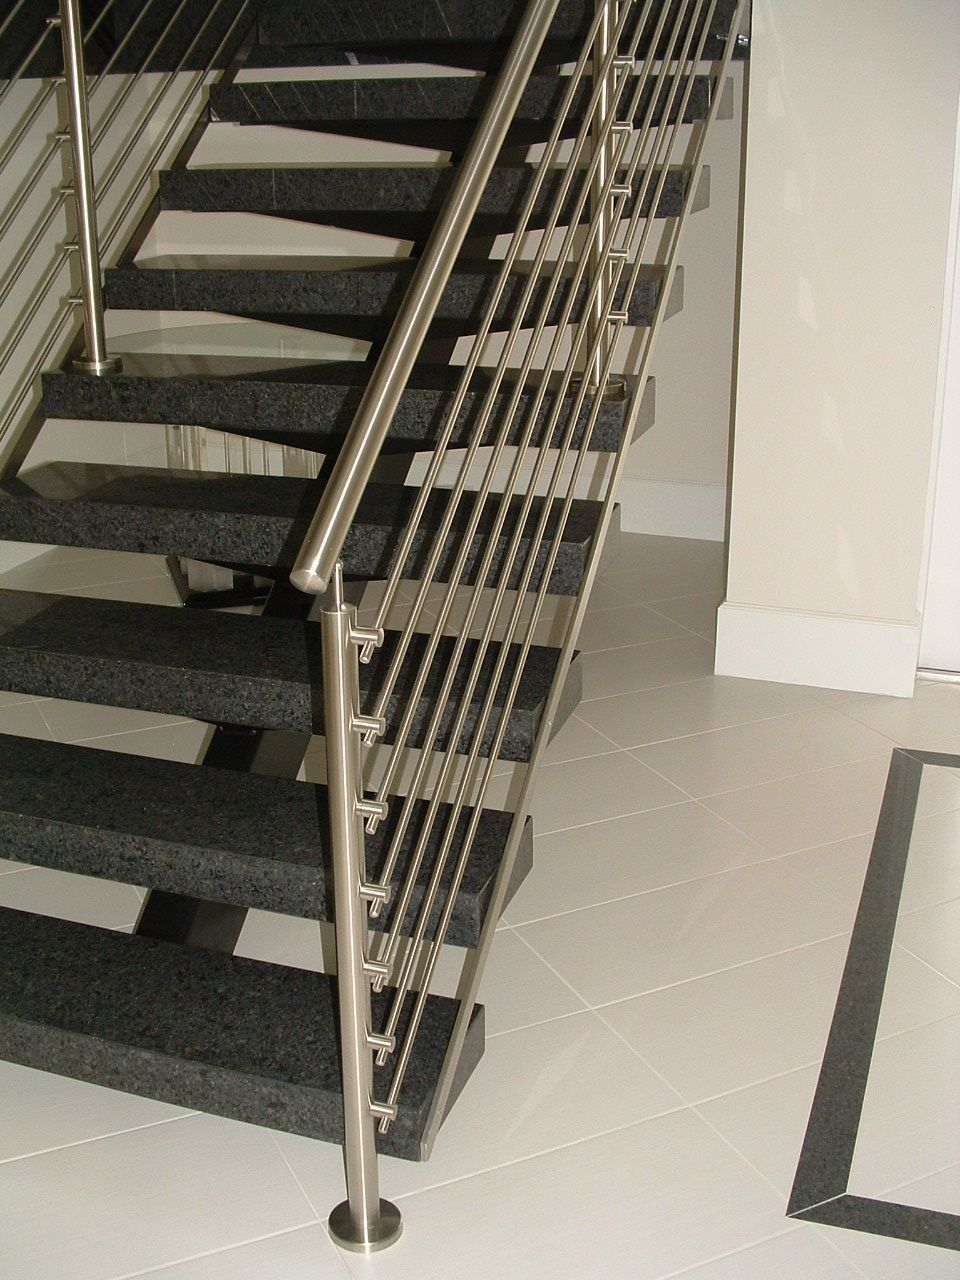 Metal Railing For Stairs Interior Google Search Railings Inside And Out Pinterest Metal